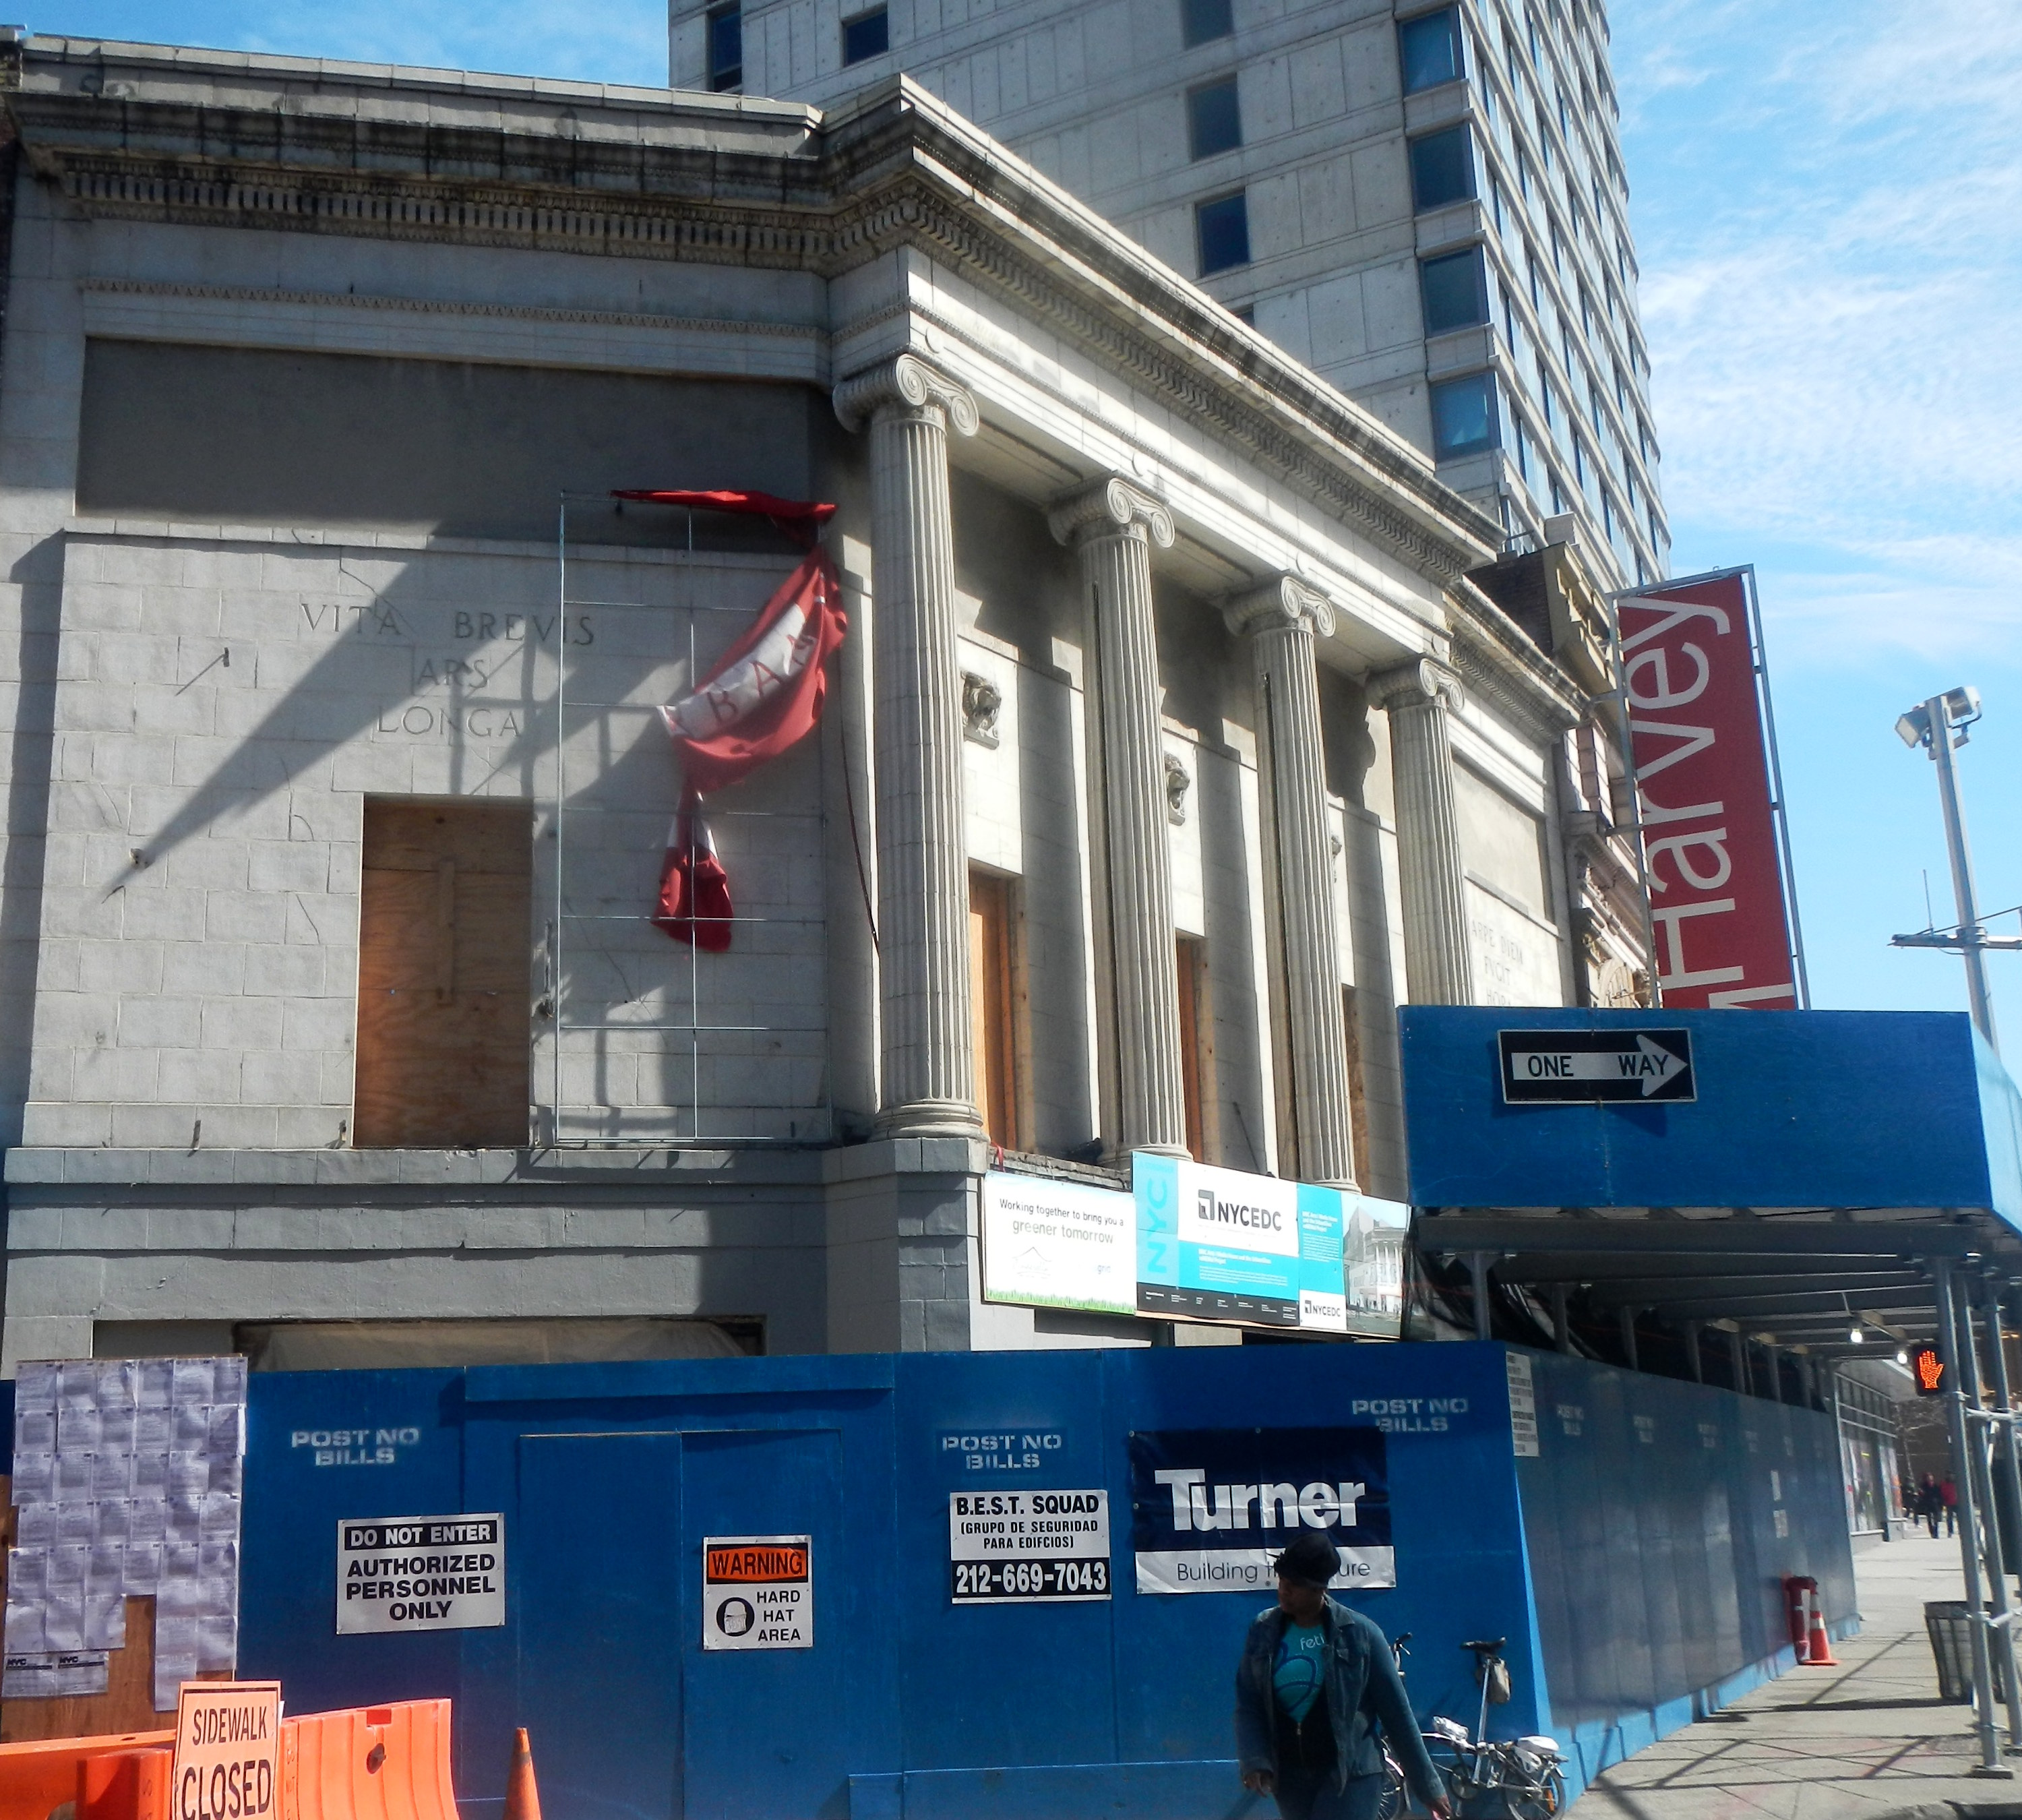 BRIC renovating jeh.jpg English: Looking east across Lafayette Avenue at Harvey Theater under renovation on a late sunny morning. Date 10